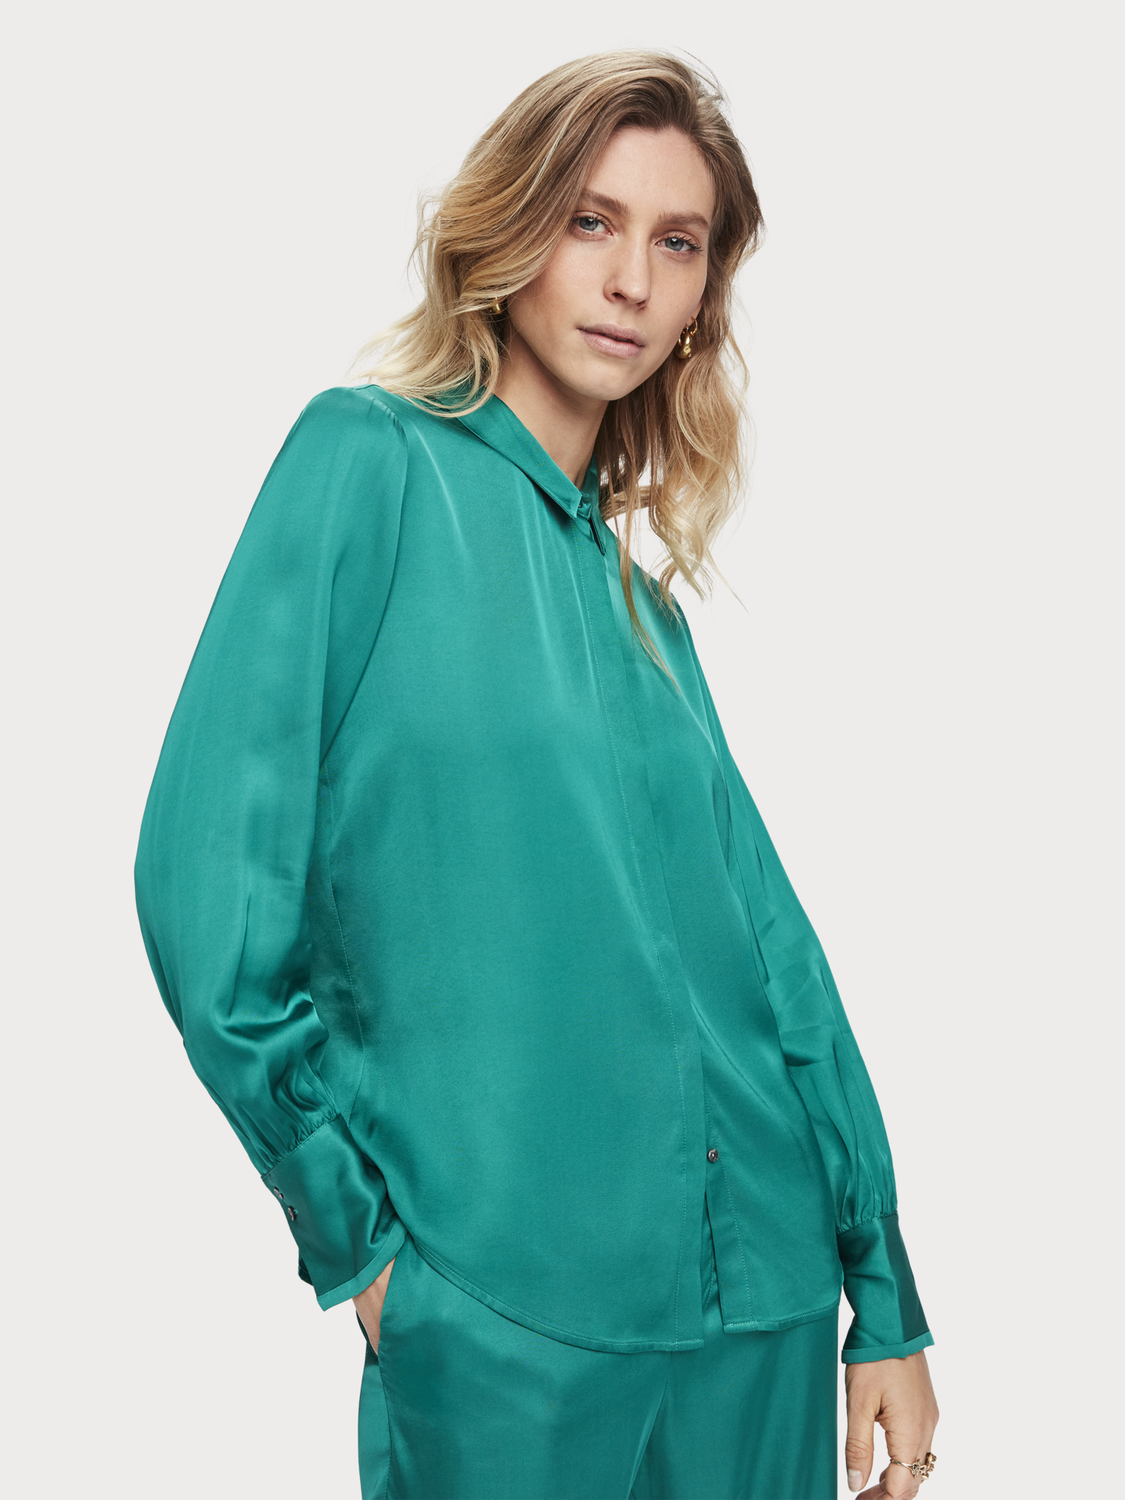 Damen Shirt aus Viskose-Satin